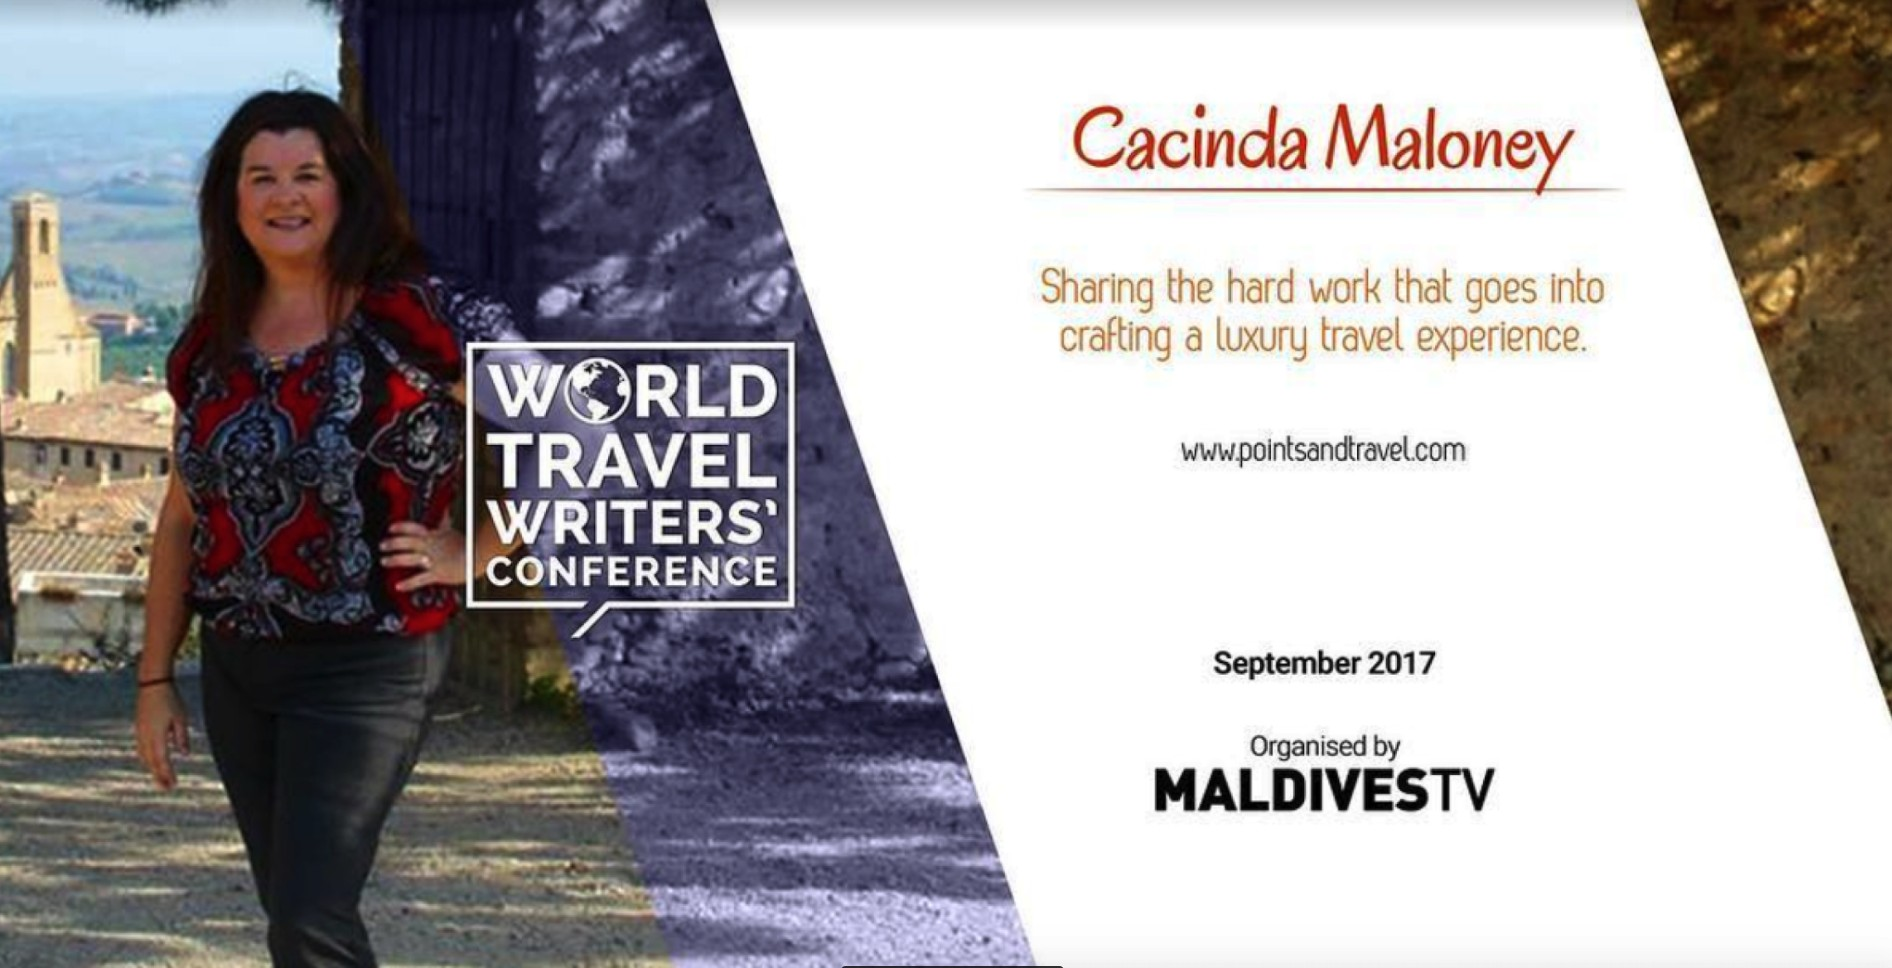 WTWC - Dr. Cacinda Maloney of PointsandTravel